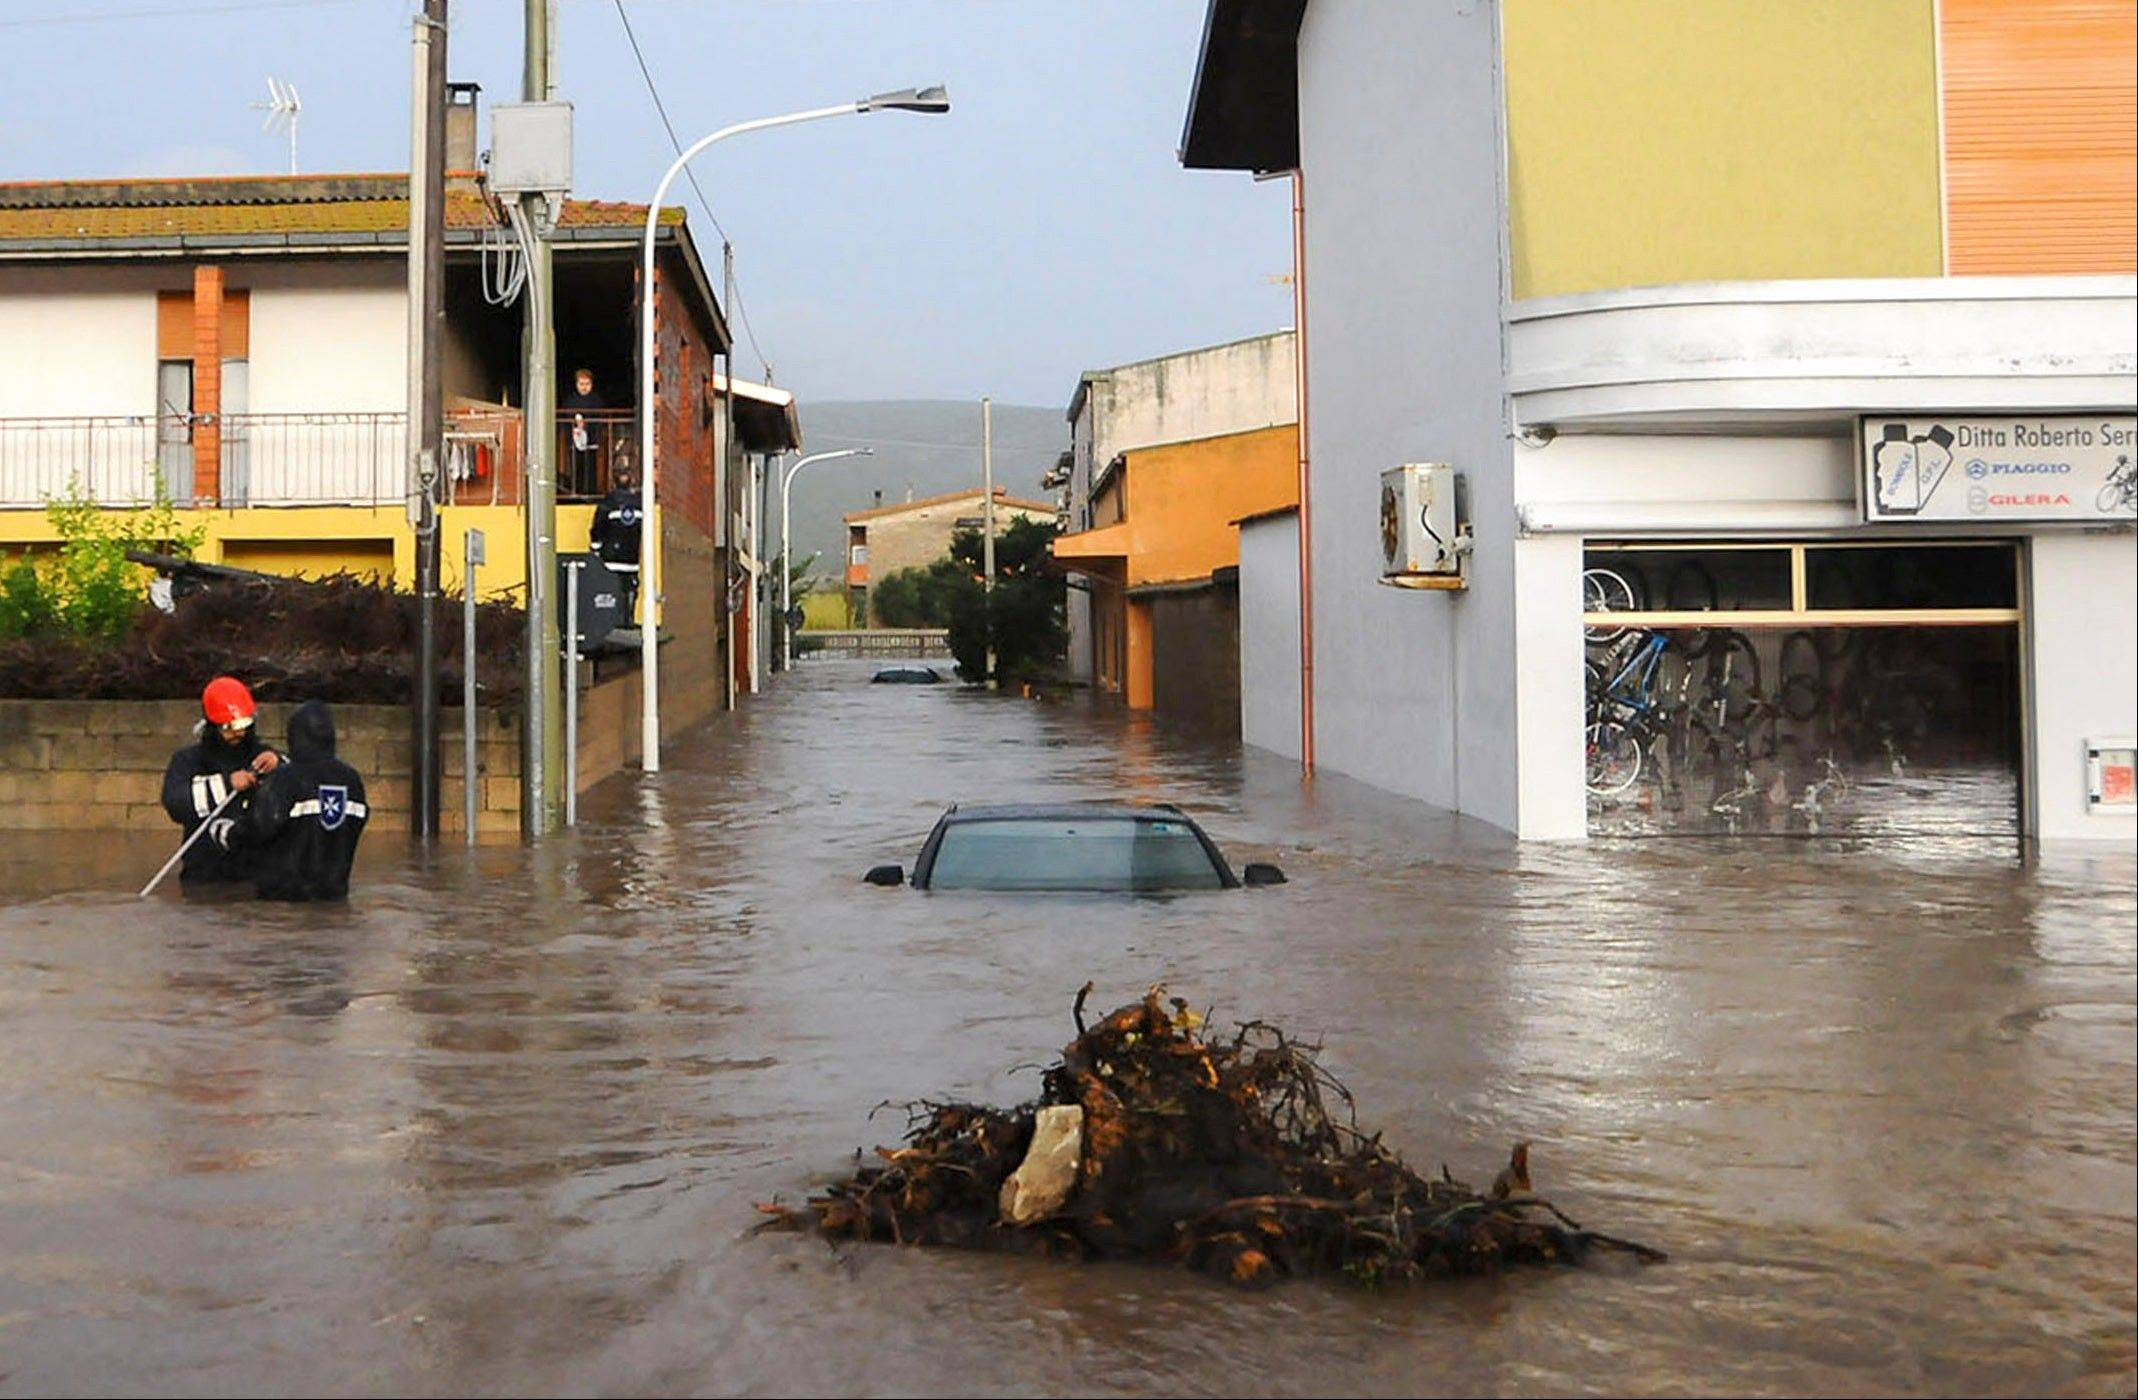 Rescuers work in a flooded street in the small town of Uras, Sardinia, Monday, Nov. 18, 2013. A violent rainstorm that flooded entire parts of the Mediterranean island of Sardinia has led to the deaths of at least 17 people.